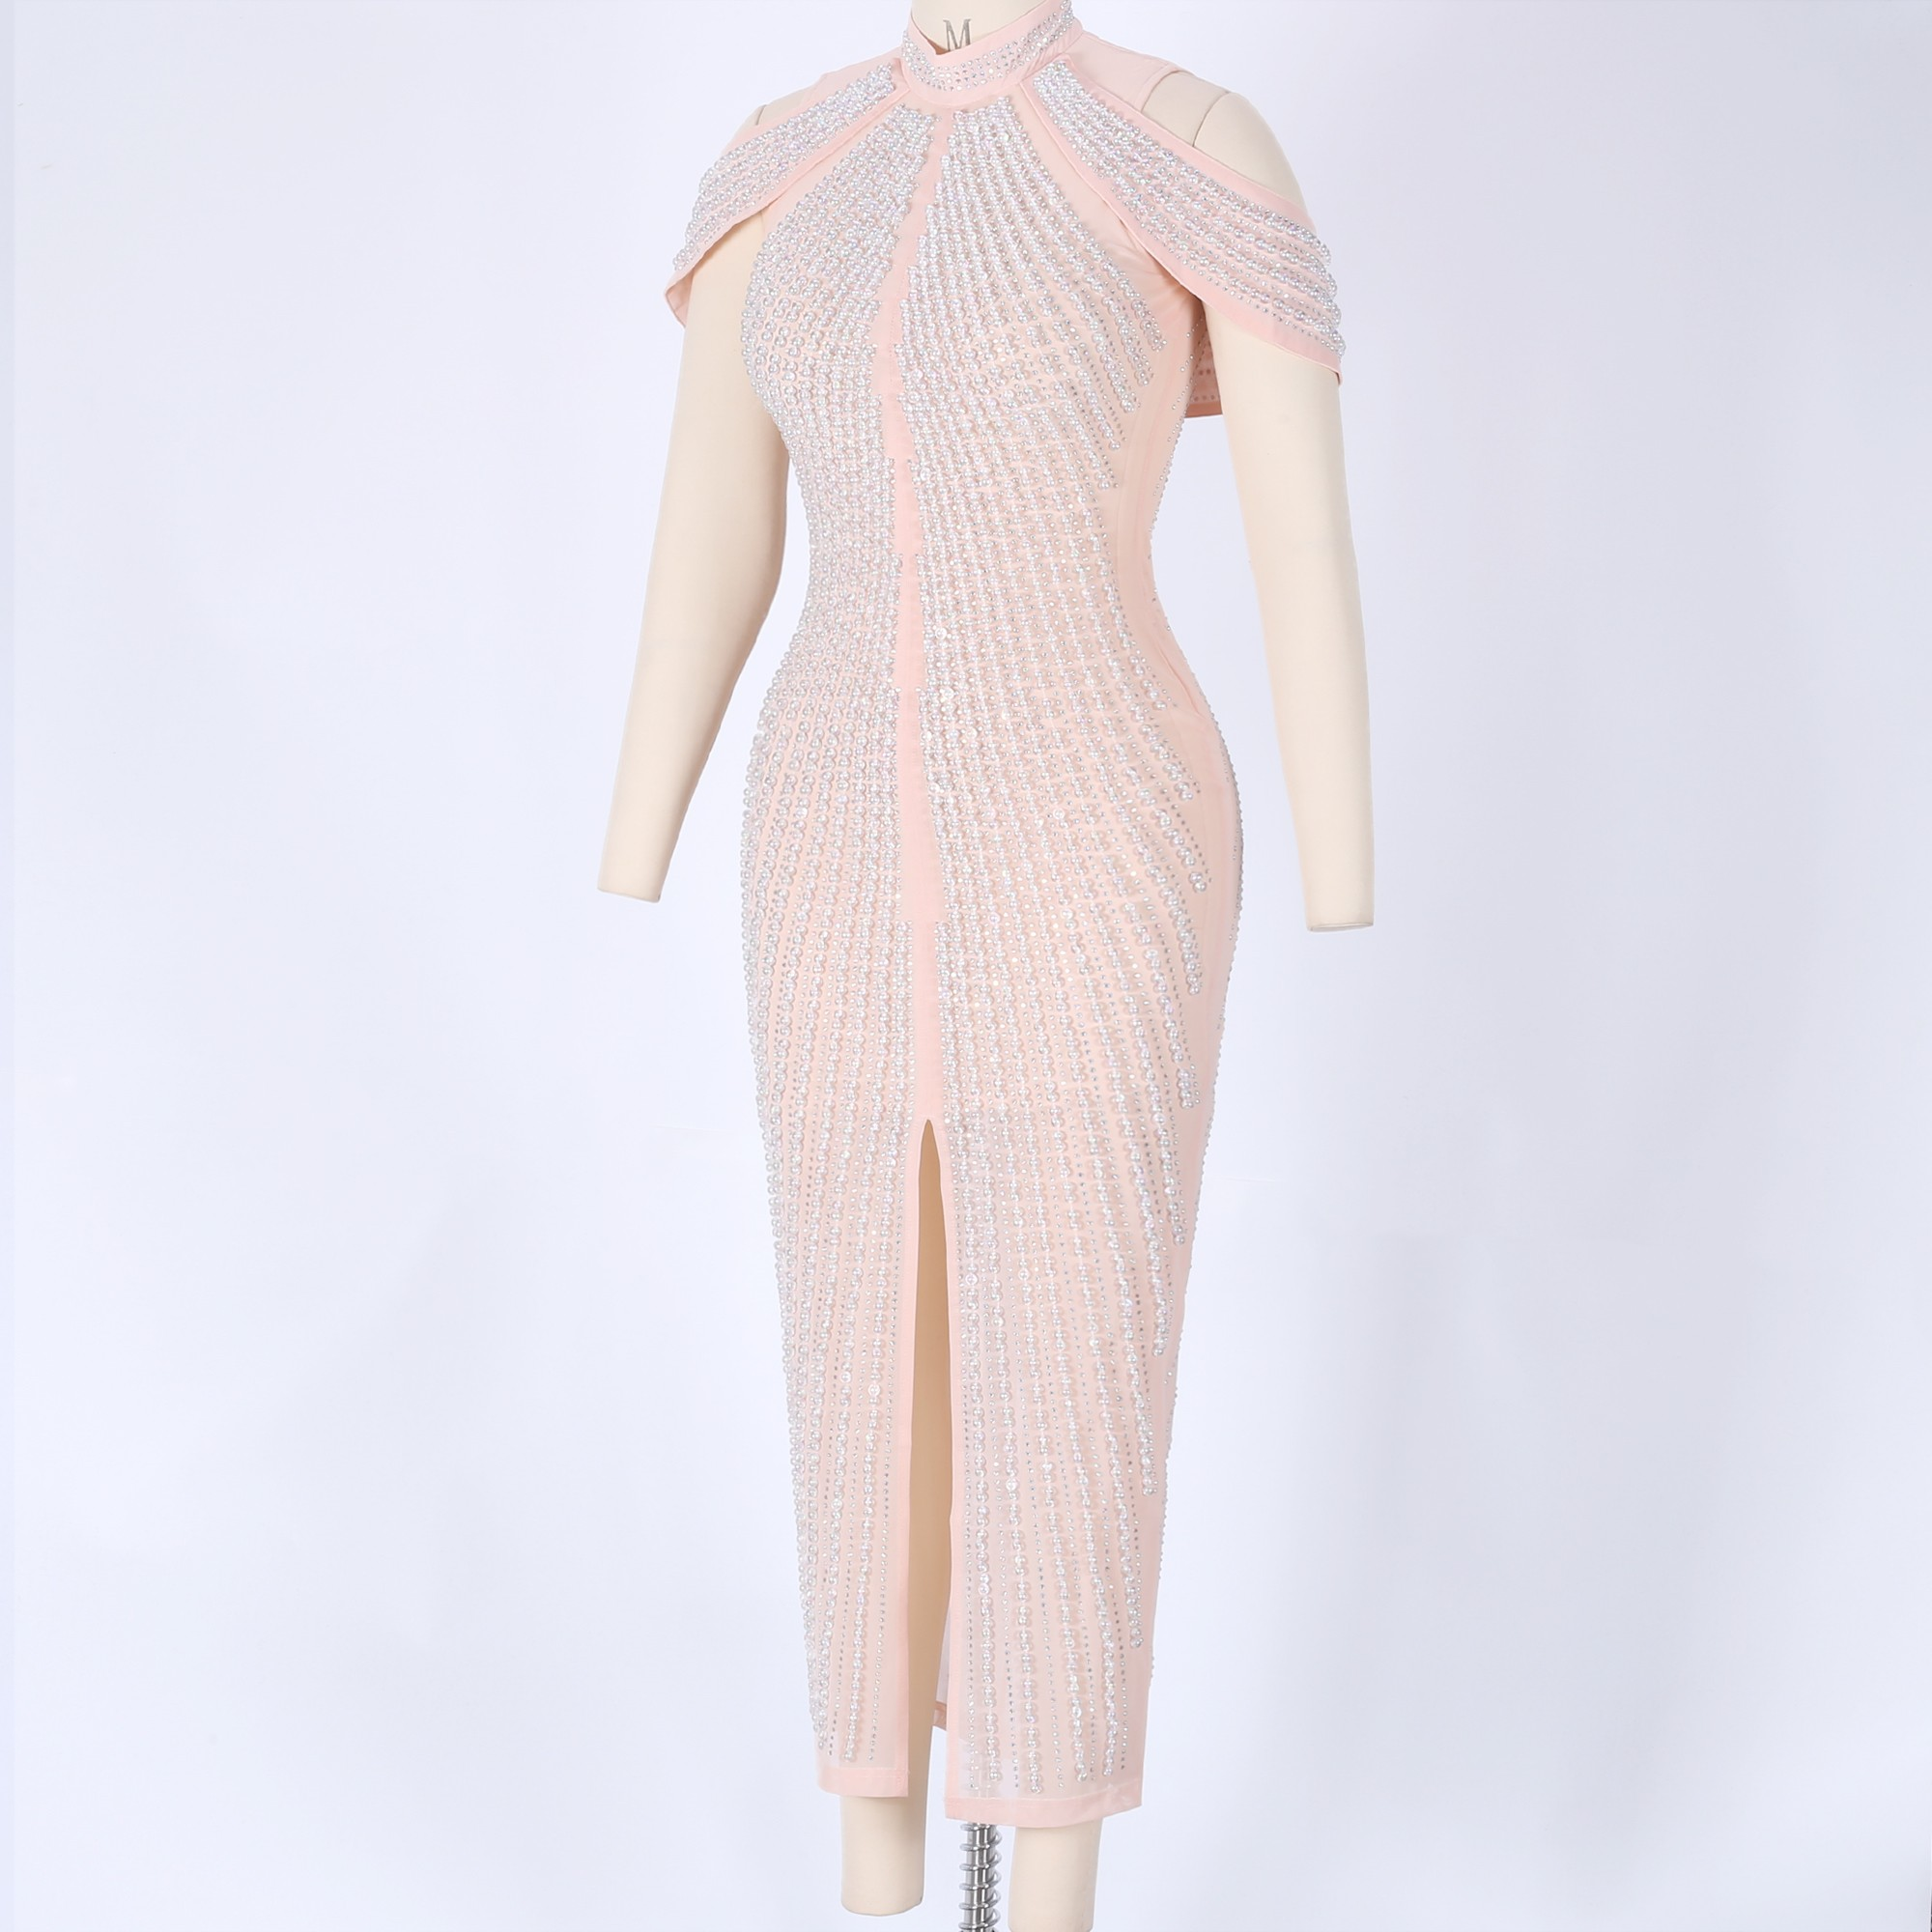 Pink Round Neck Short Sleeve Maxi Cutout  Paillette Fashion Bodycon Dress HW233-Pink